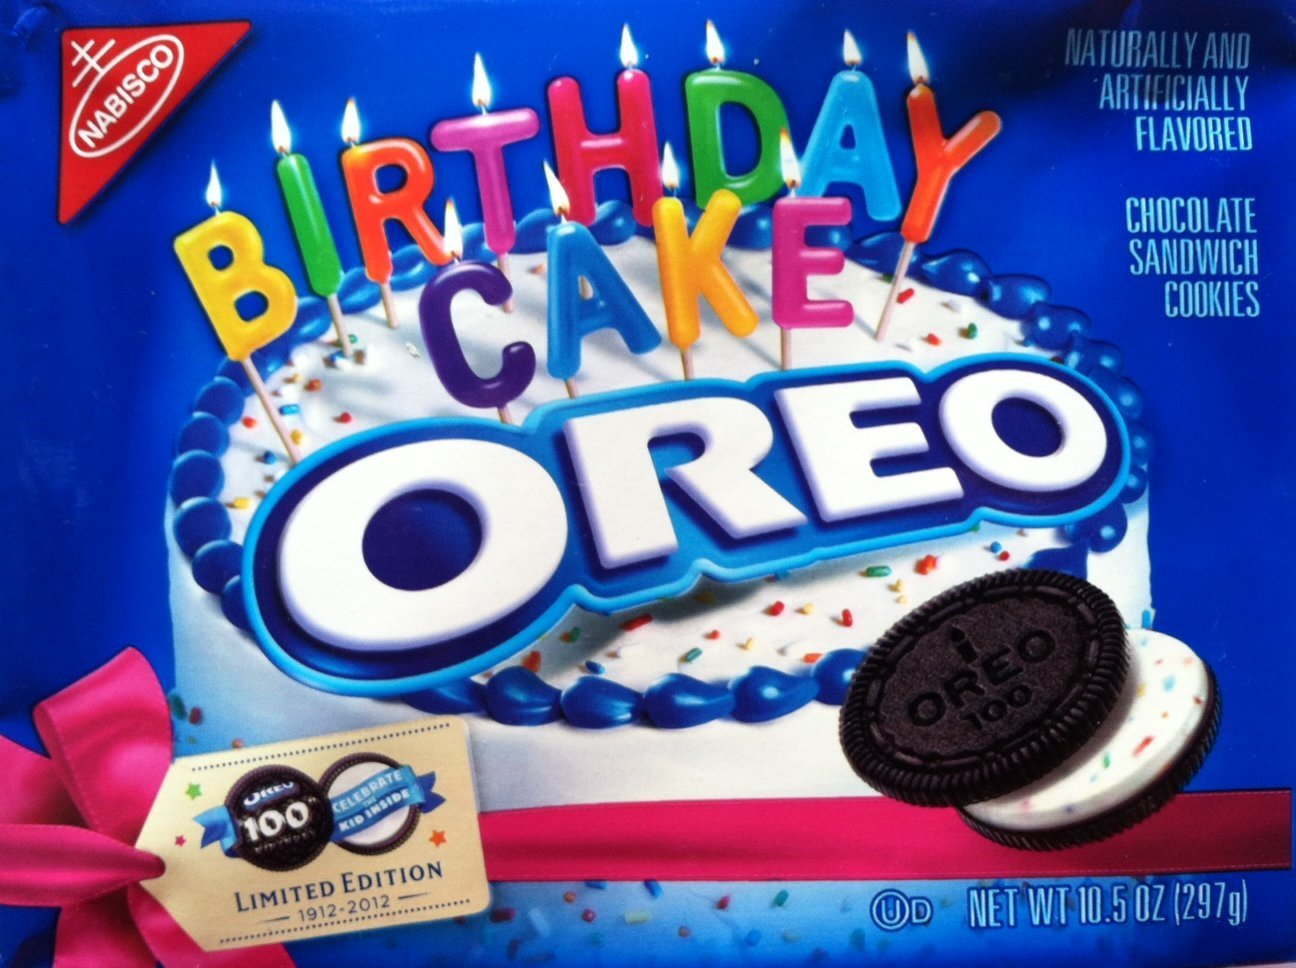 Amazoncom Oreo 100th Birthday Cake Cookies Pack of 2